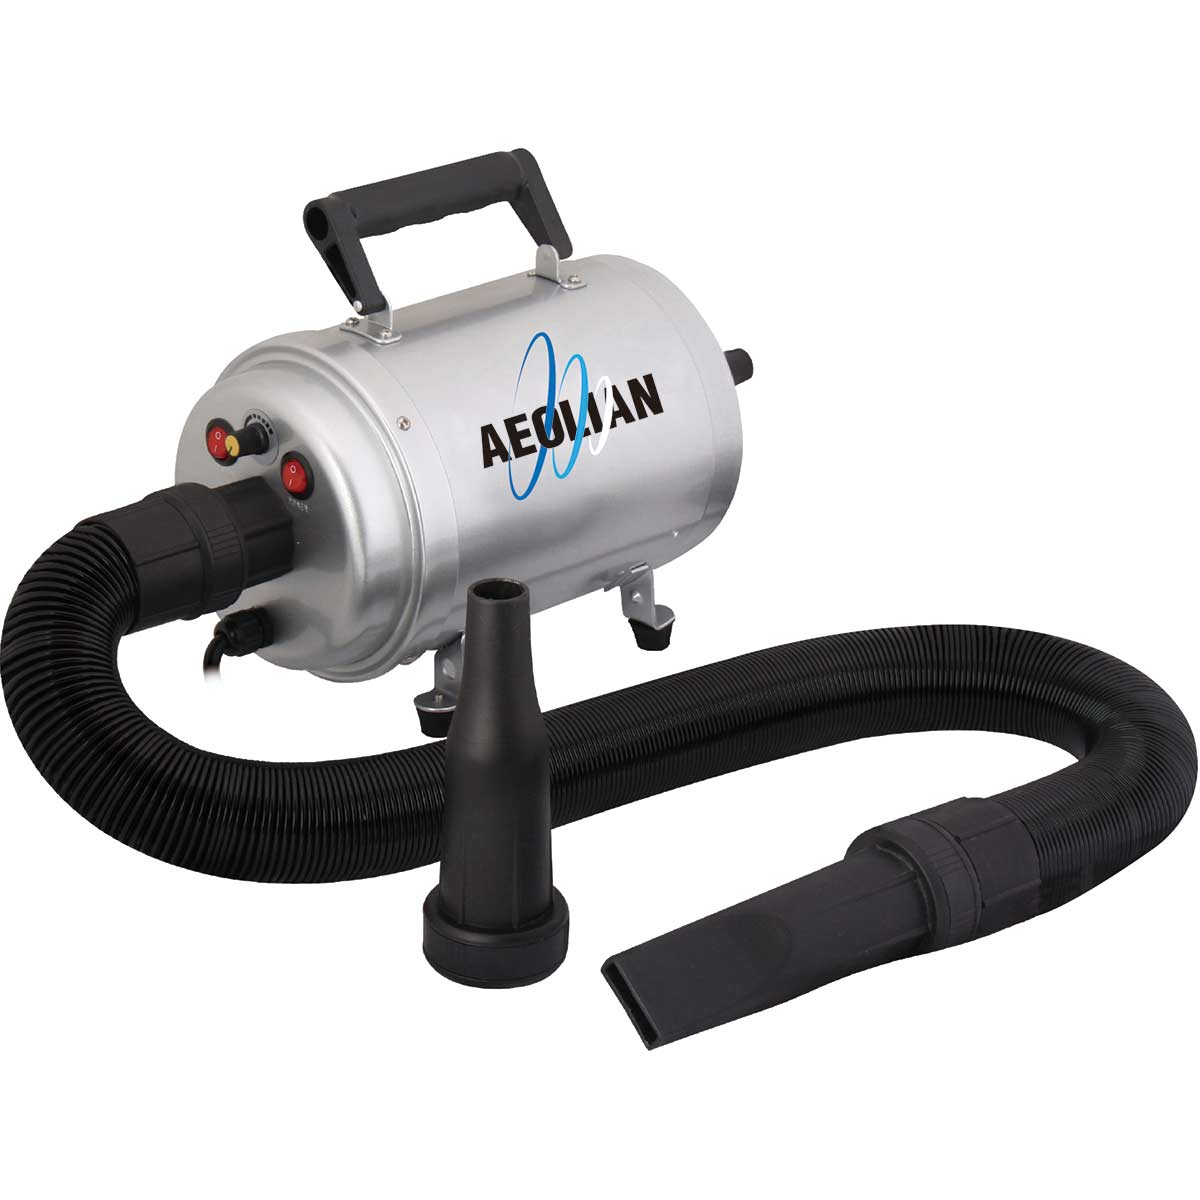 Aeolian Dog Grooming Dryer